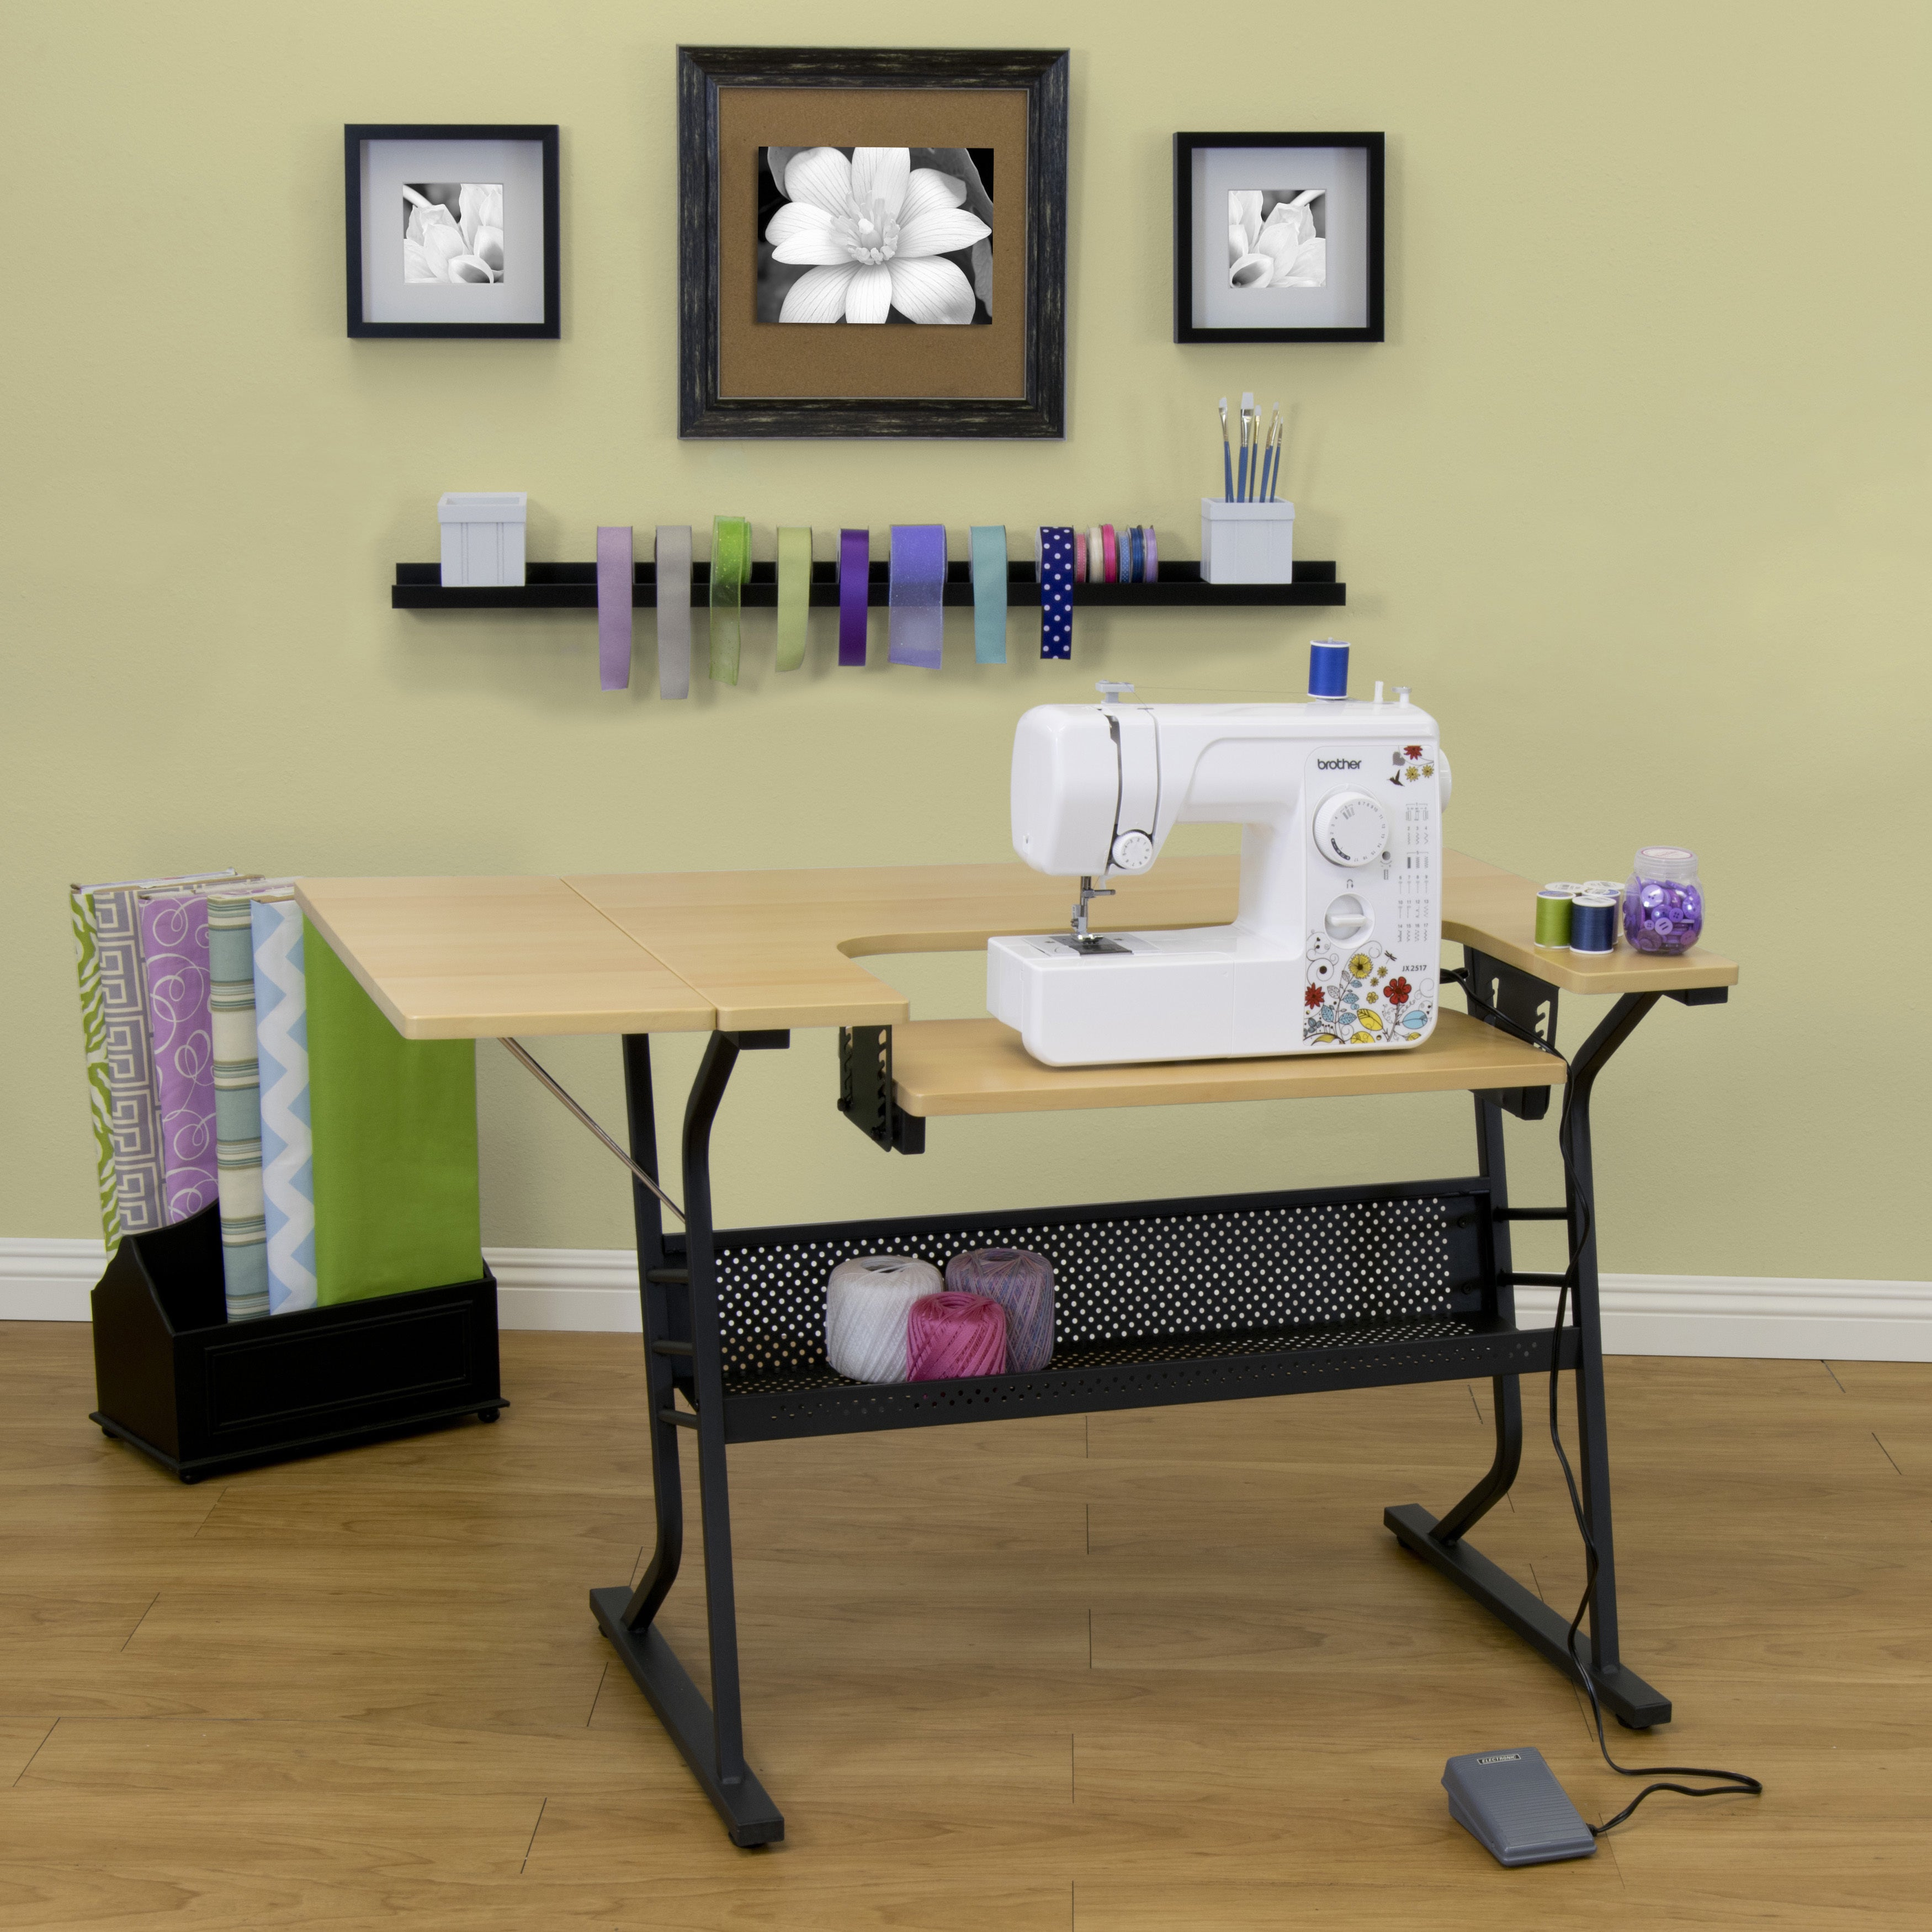 sewing machine table - HD3500×3500